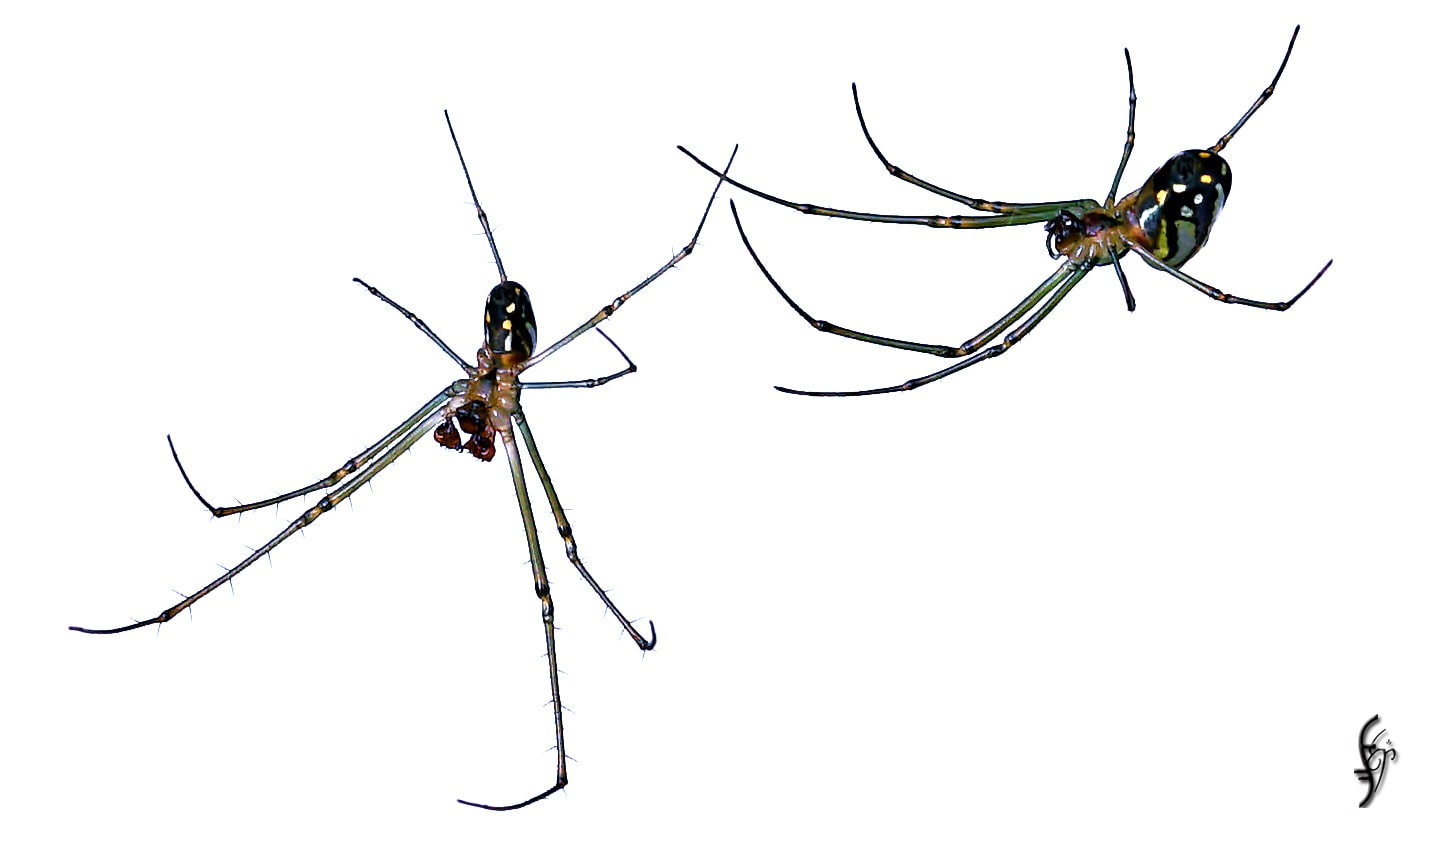 Picture of Leucauge argyra - Male,Female - Ventral